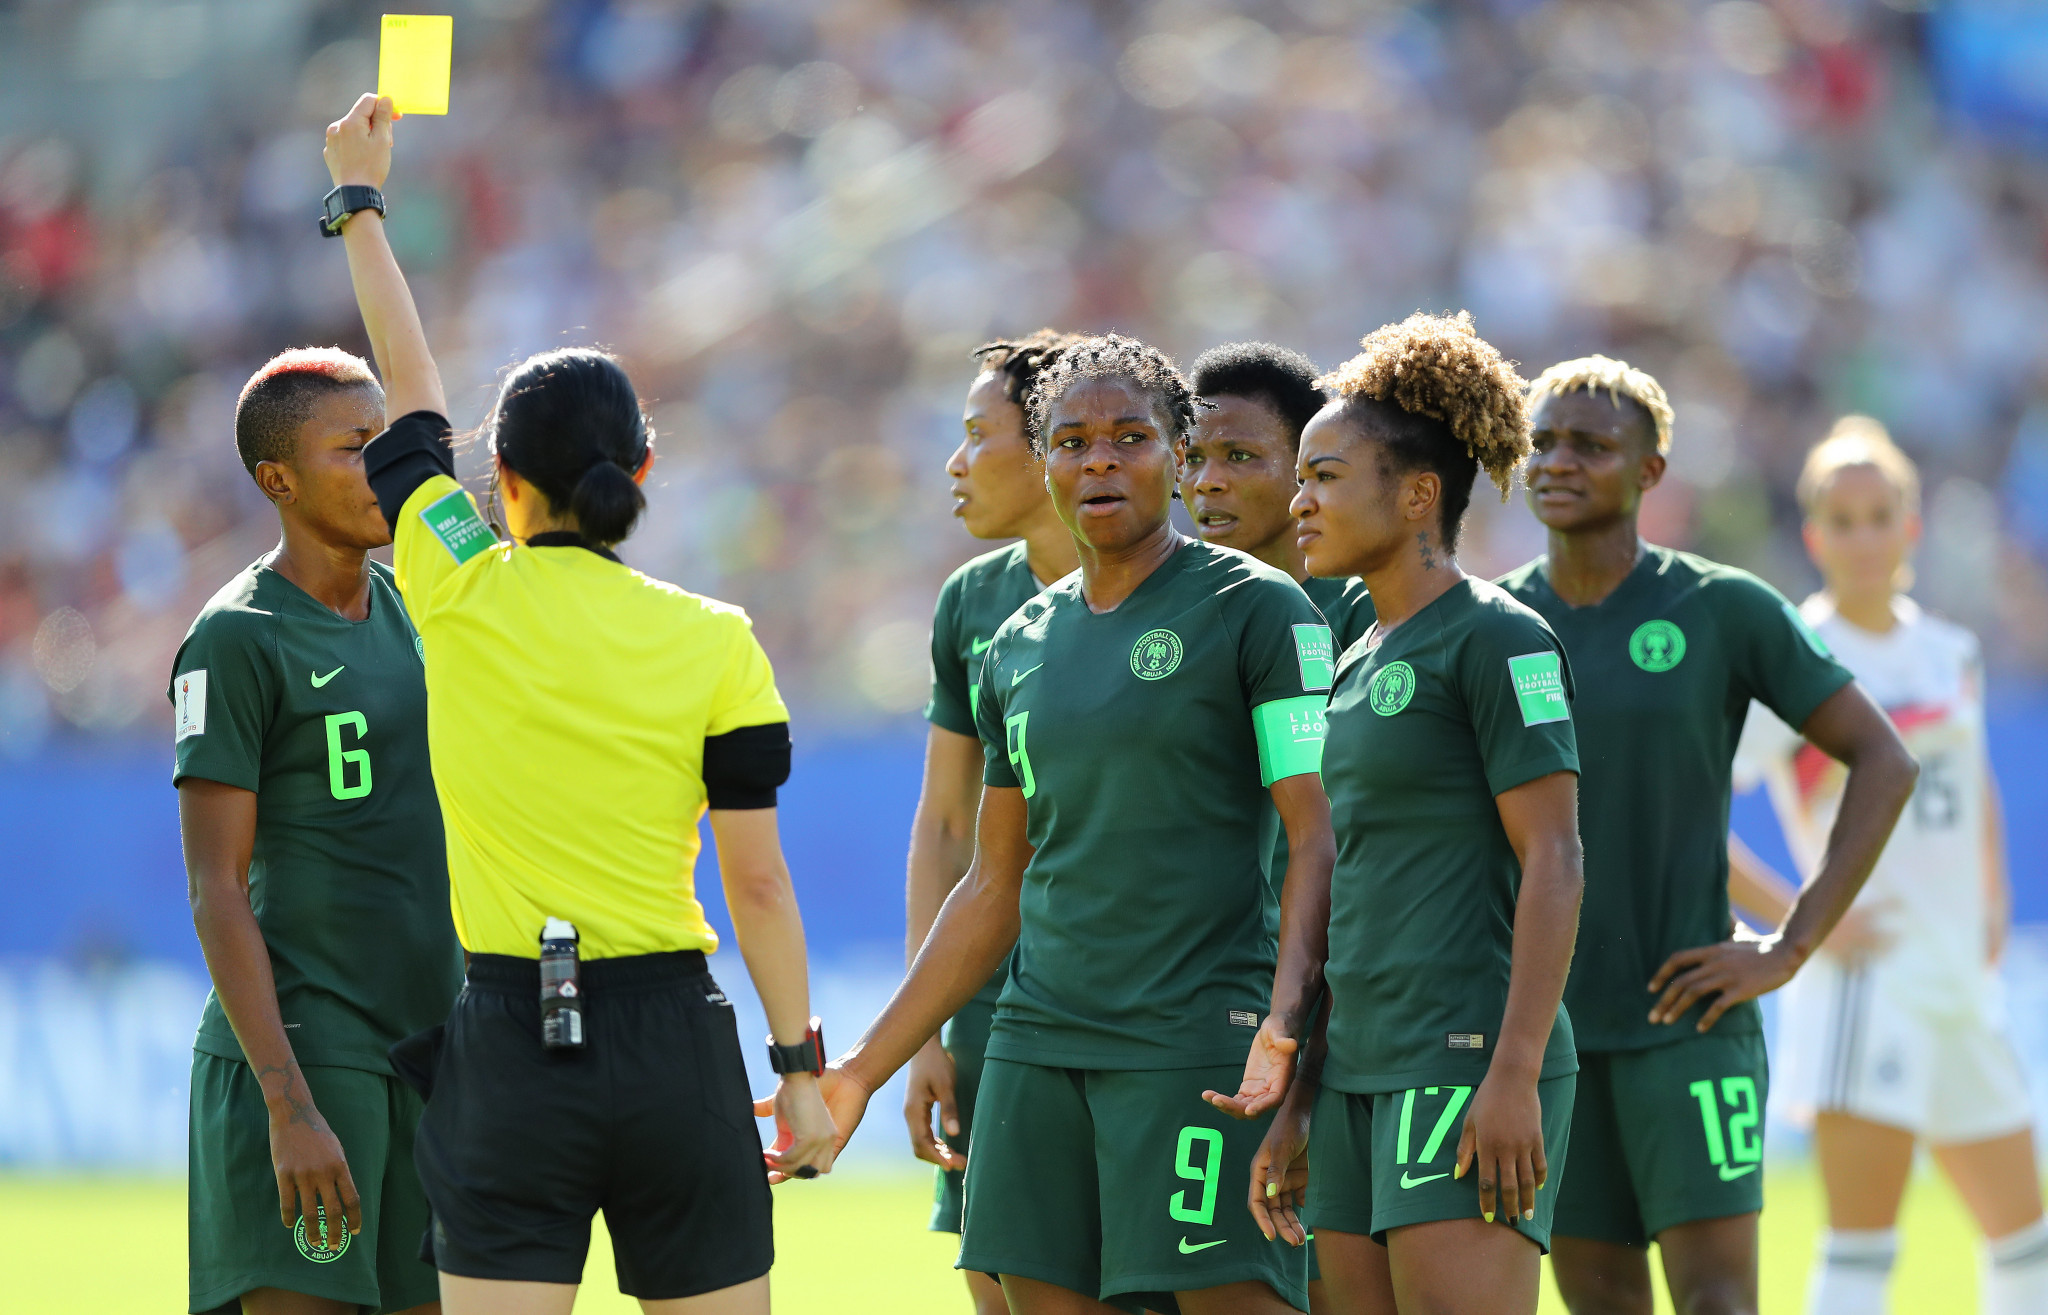 Referee Yoshimi Yamashita shows Evelyn Nwabuoku a yellow card after awarding a penalty against Nigeria via VAR ©Getty Images